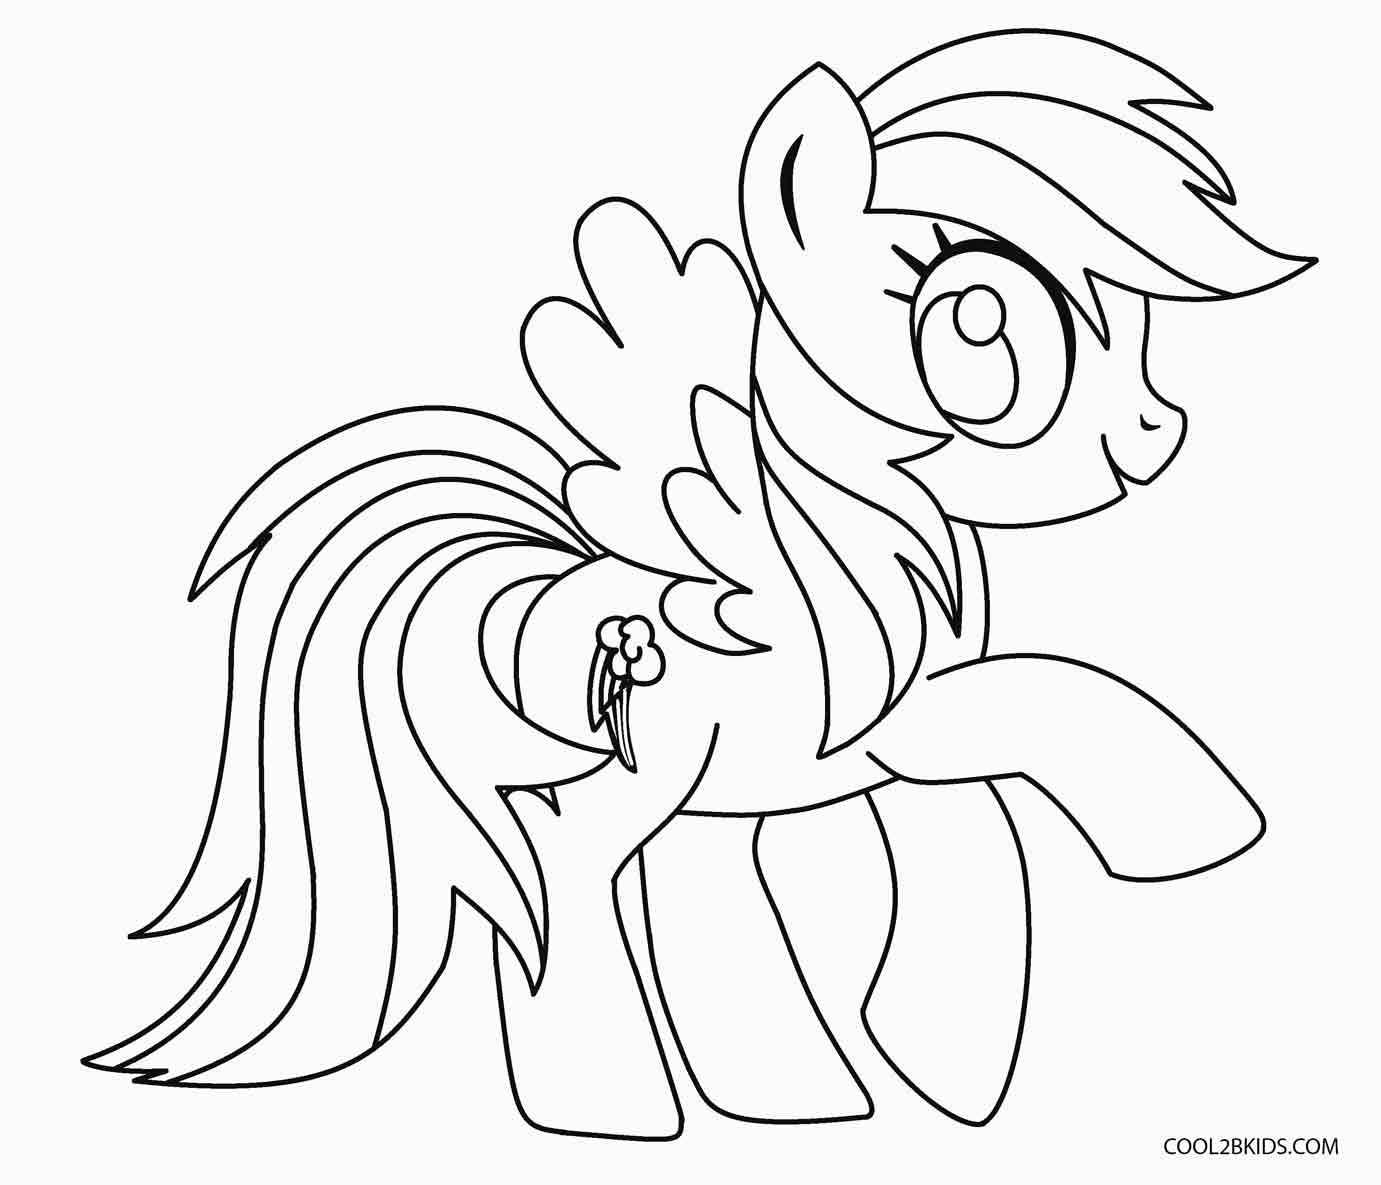 pony color pages my little pony coloring pages print and colorcom pony color pages